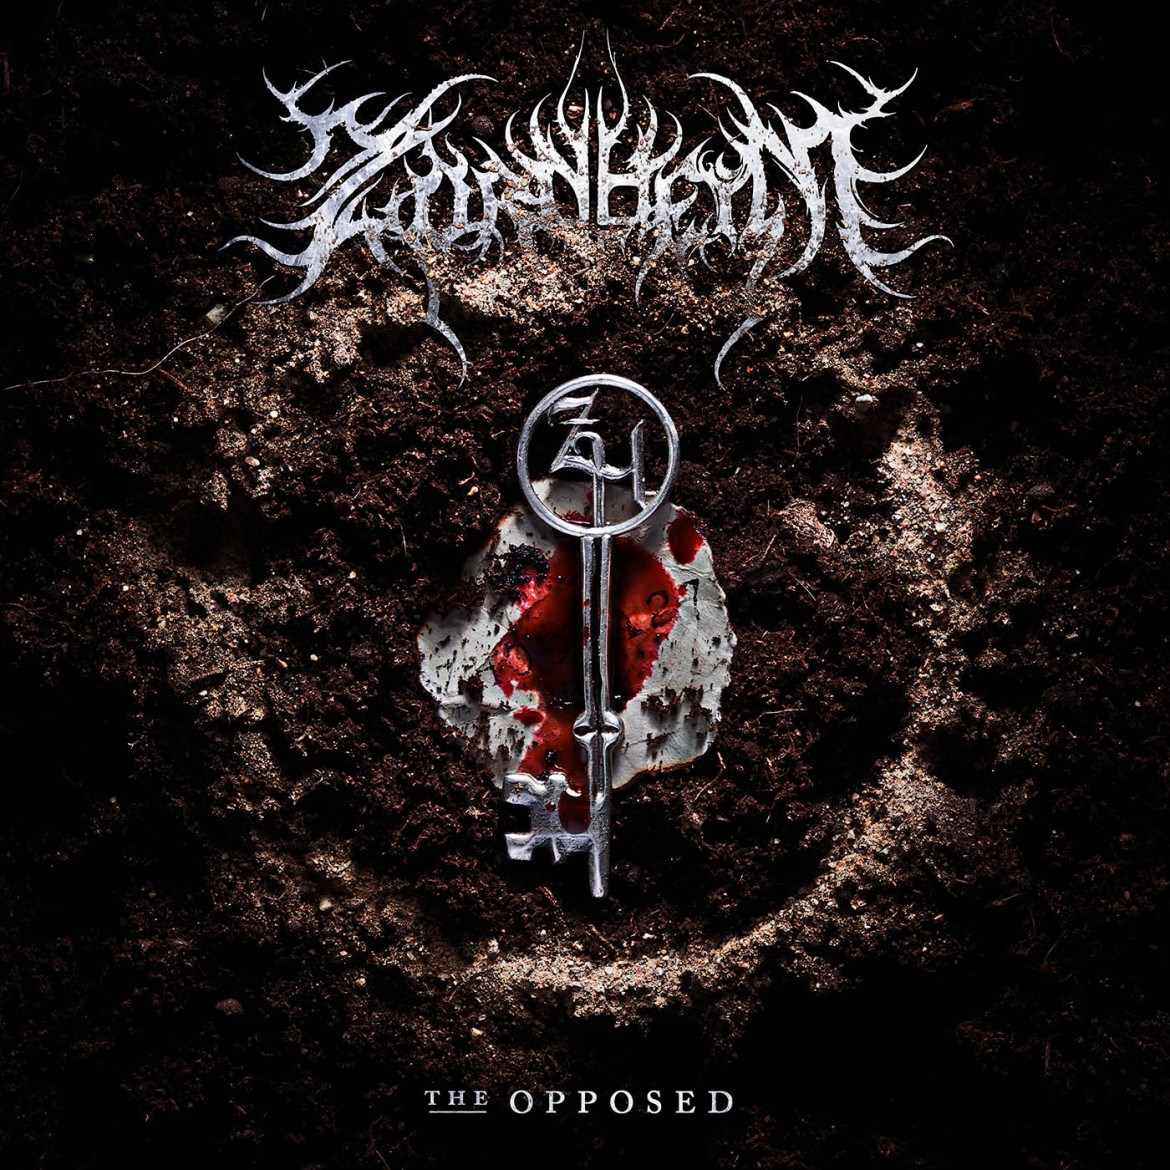 zornheym_the_opposed 1400x1400